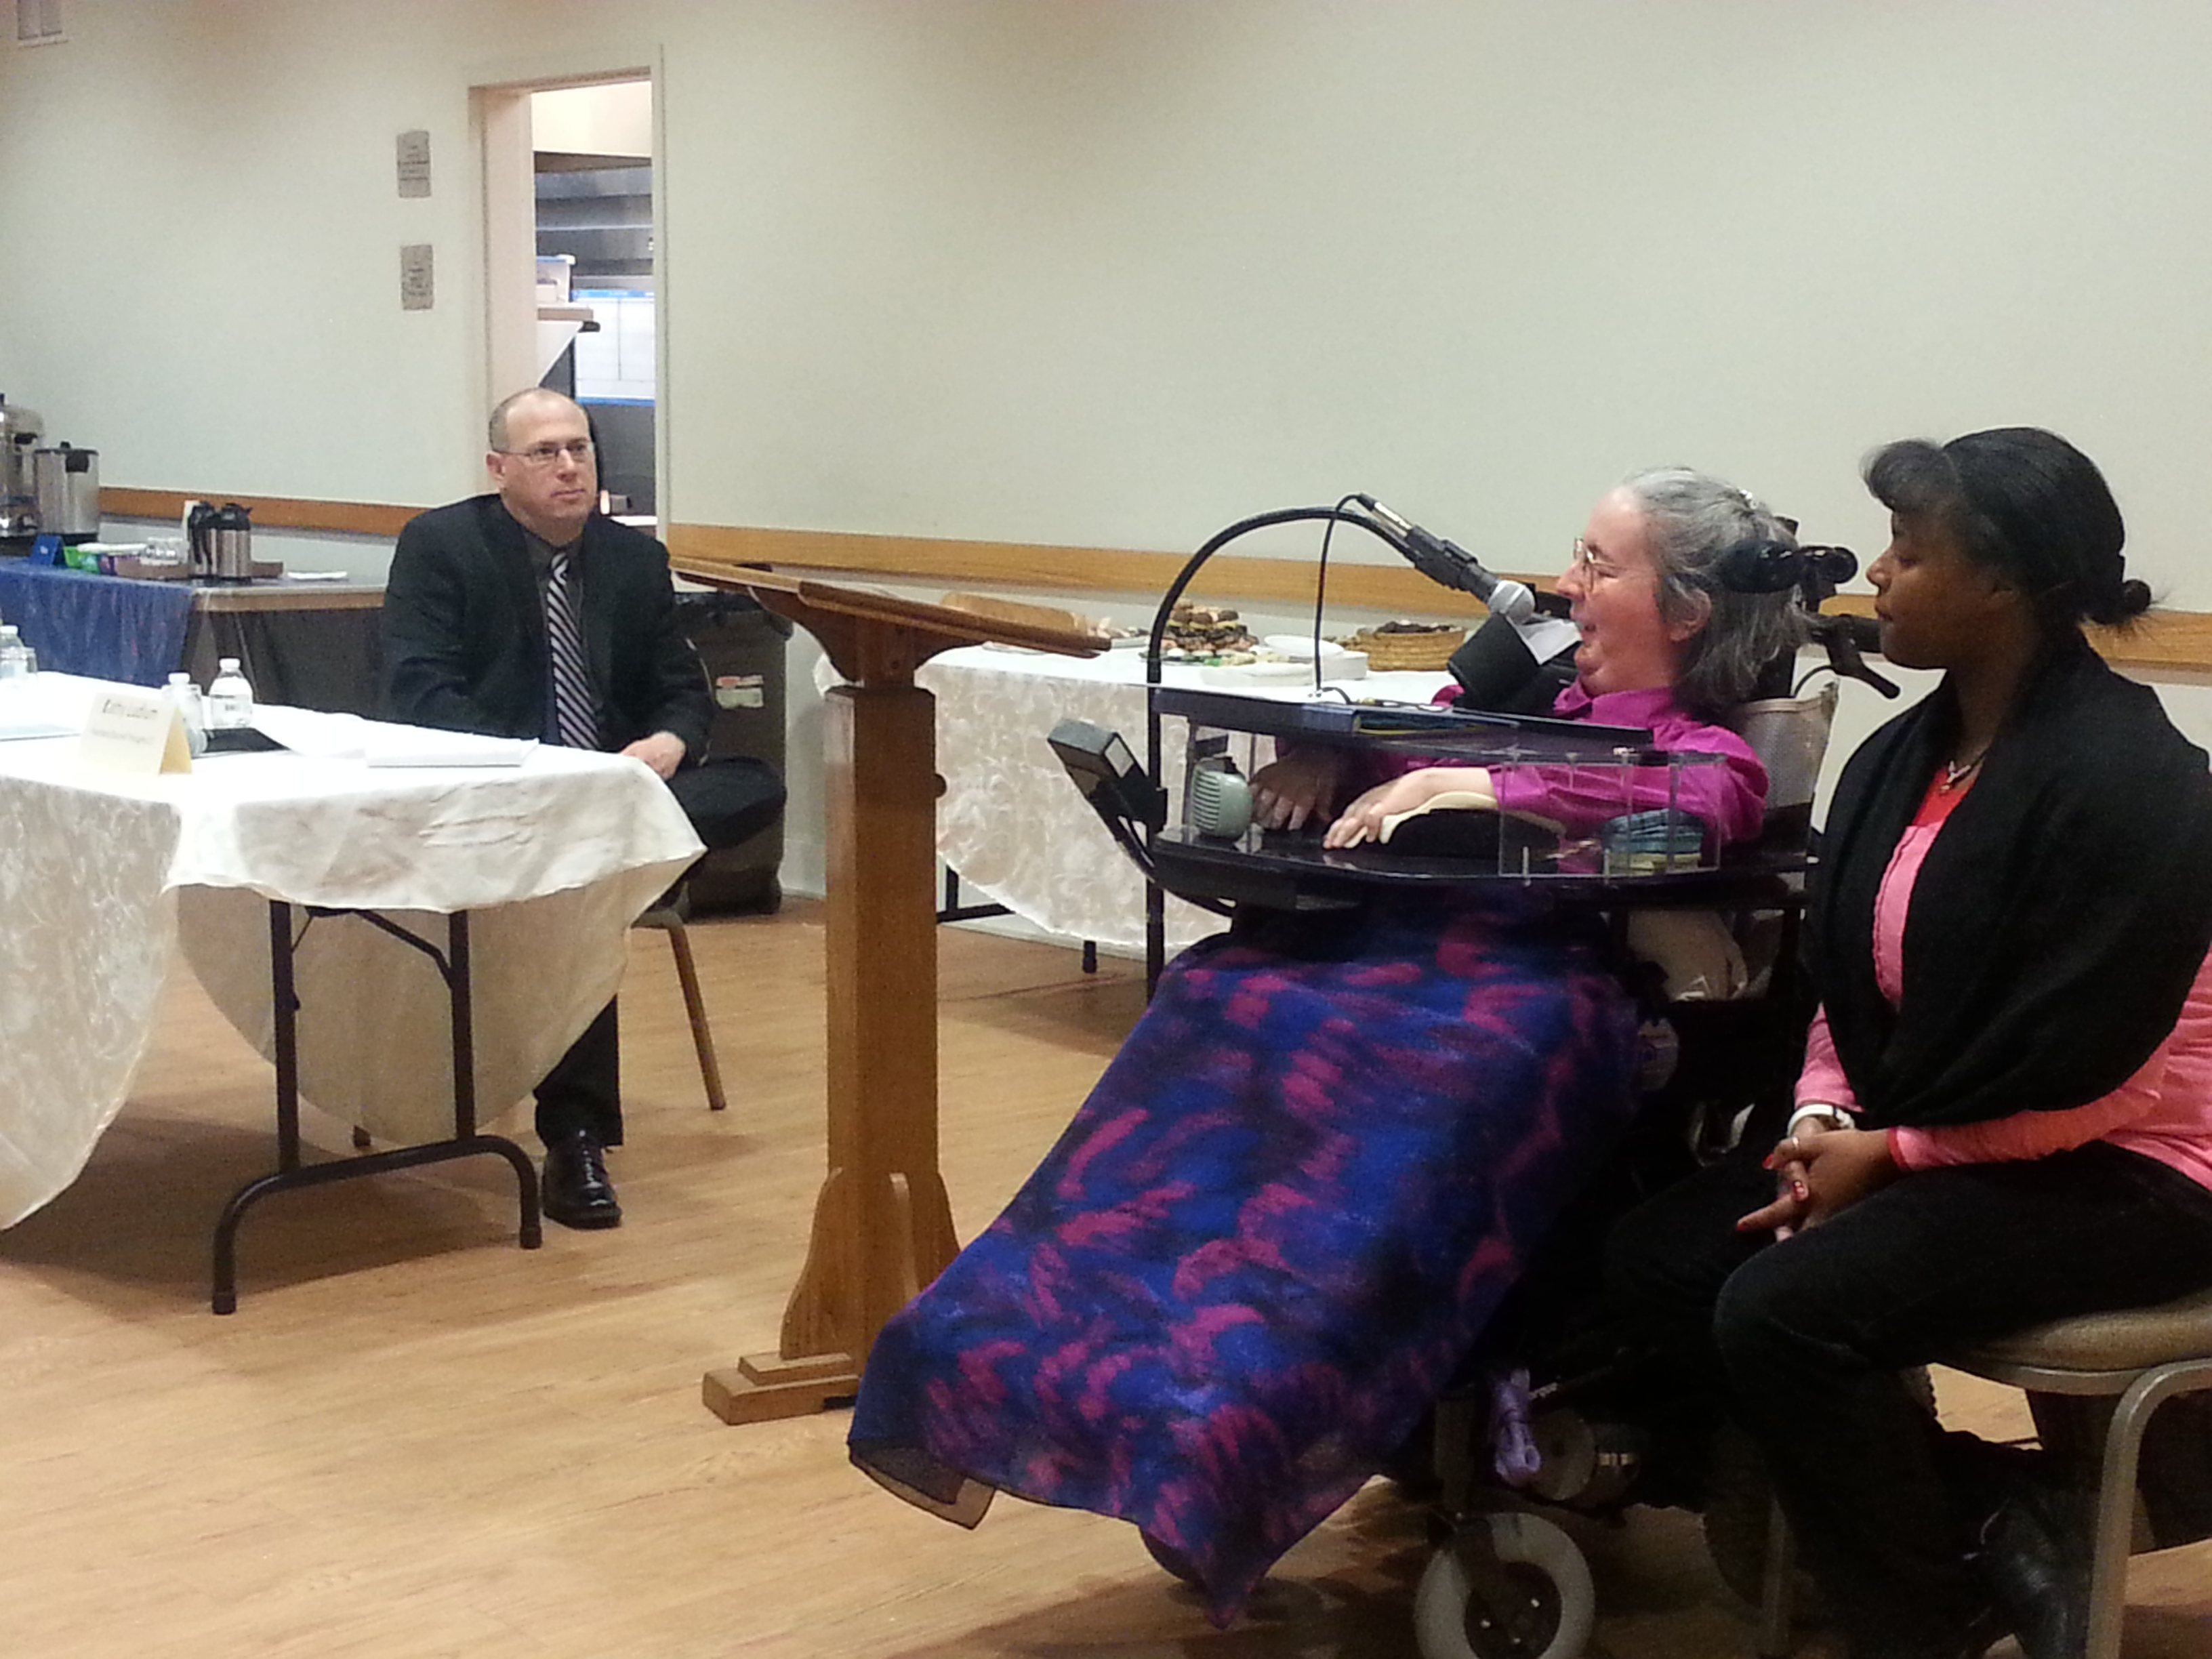 a discussion on assisted suicide and death Give a dignified death legalizing physician assisted suicide would allow people to opt for death in a dignified way cons of legalizing physician assisted suicide 1.